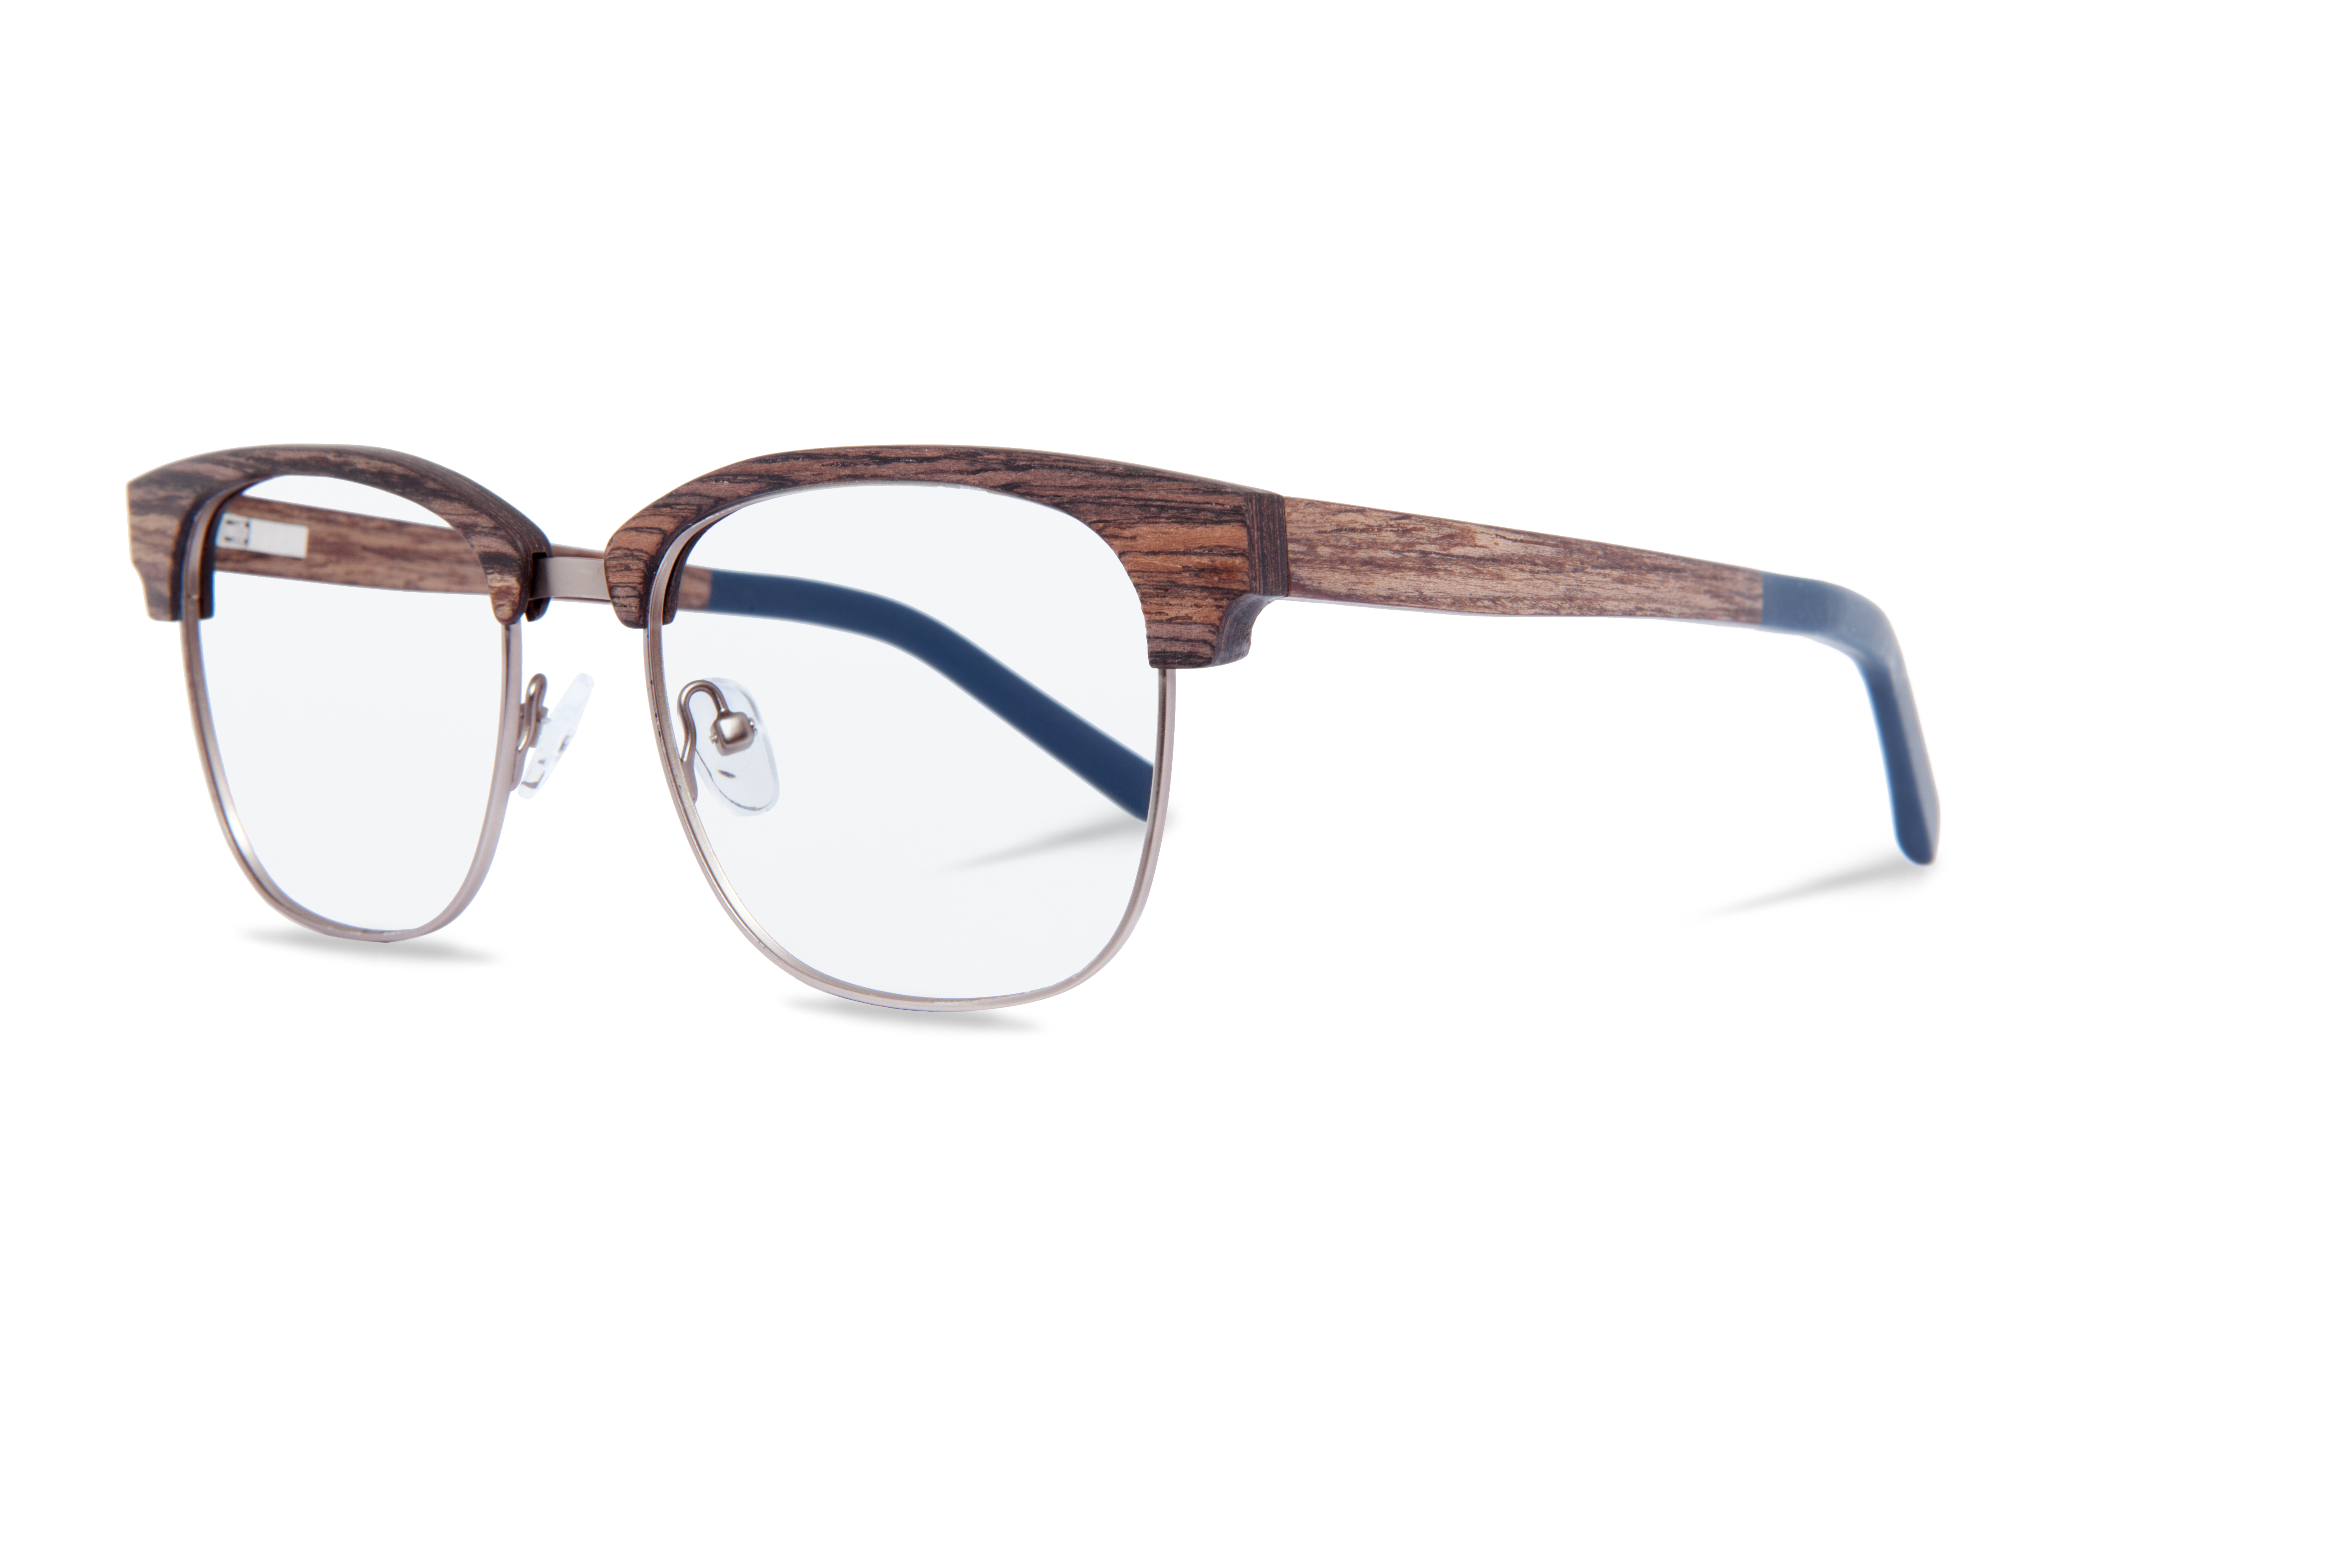 ALBERT [kingwood] #curatedeyewear #style #glasses | KERBHOLZ | Pinterest